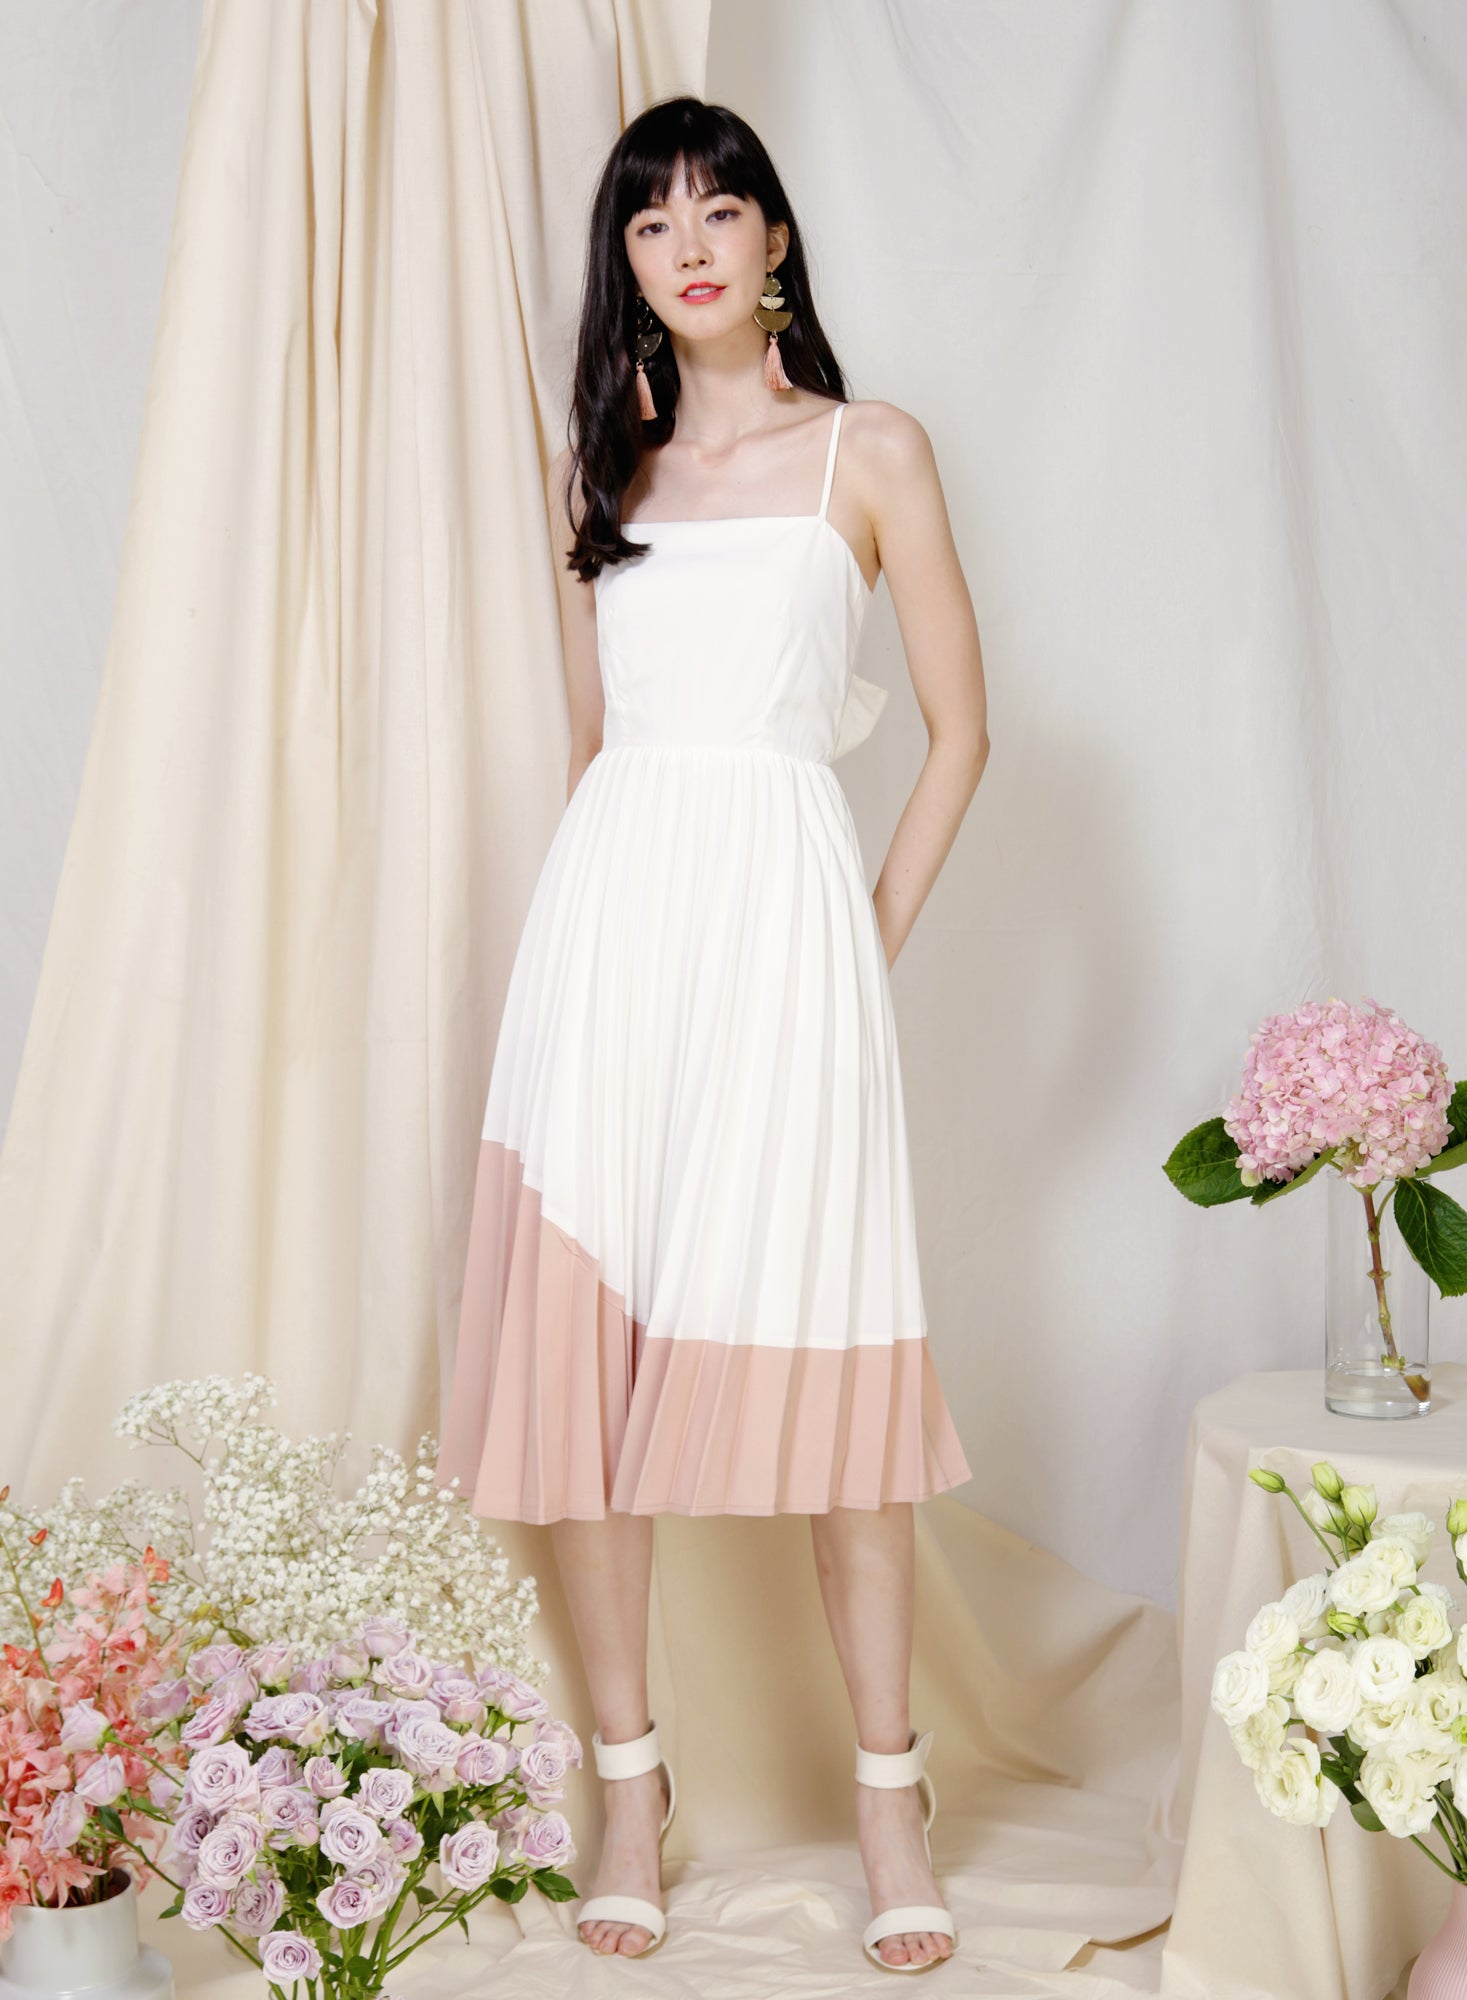 Eternity Tie Back Pleated Dress (White/Blush) - And Well Dressed